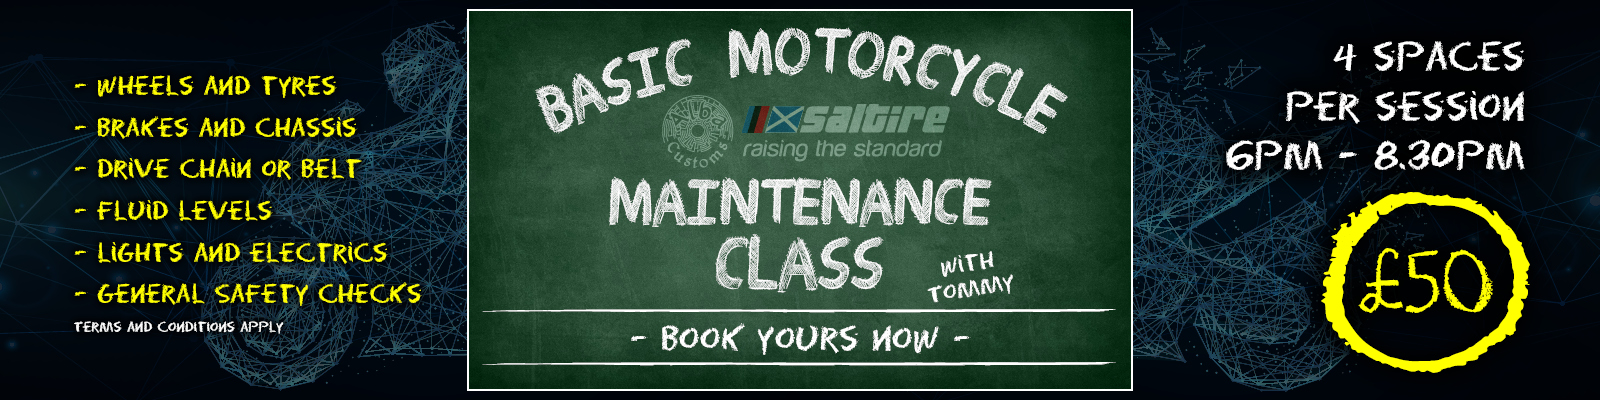 Basic Motorcycle Maintenance Class